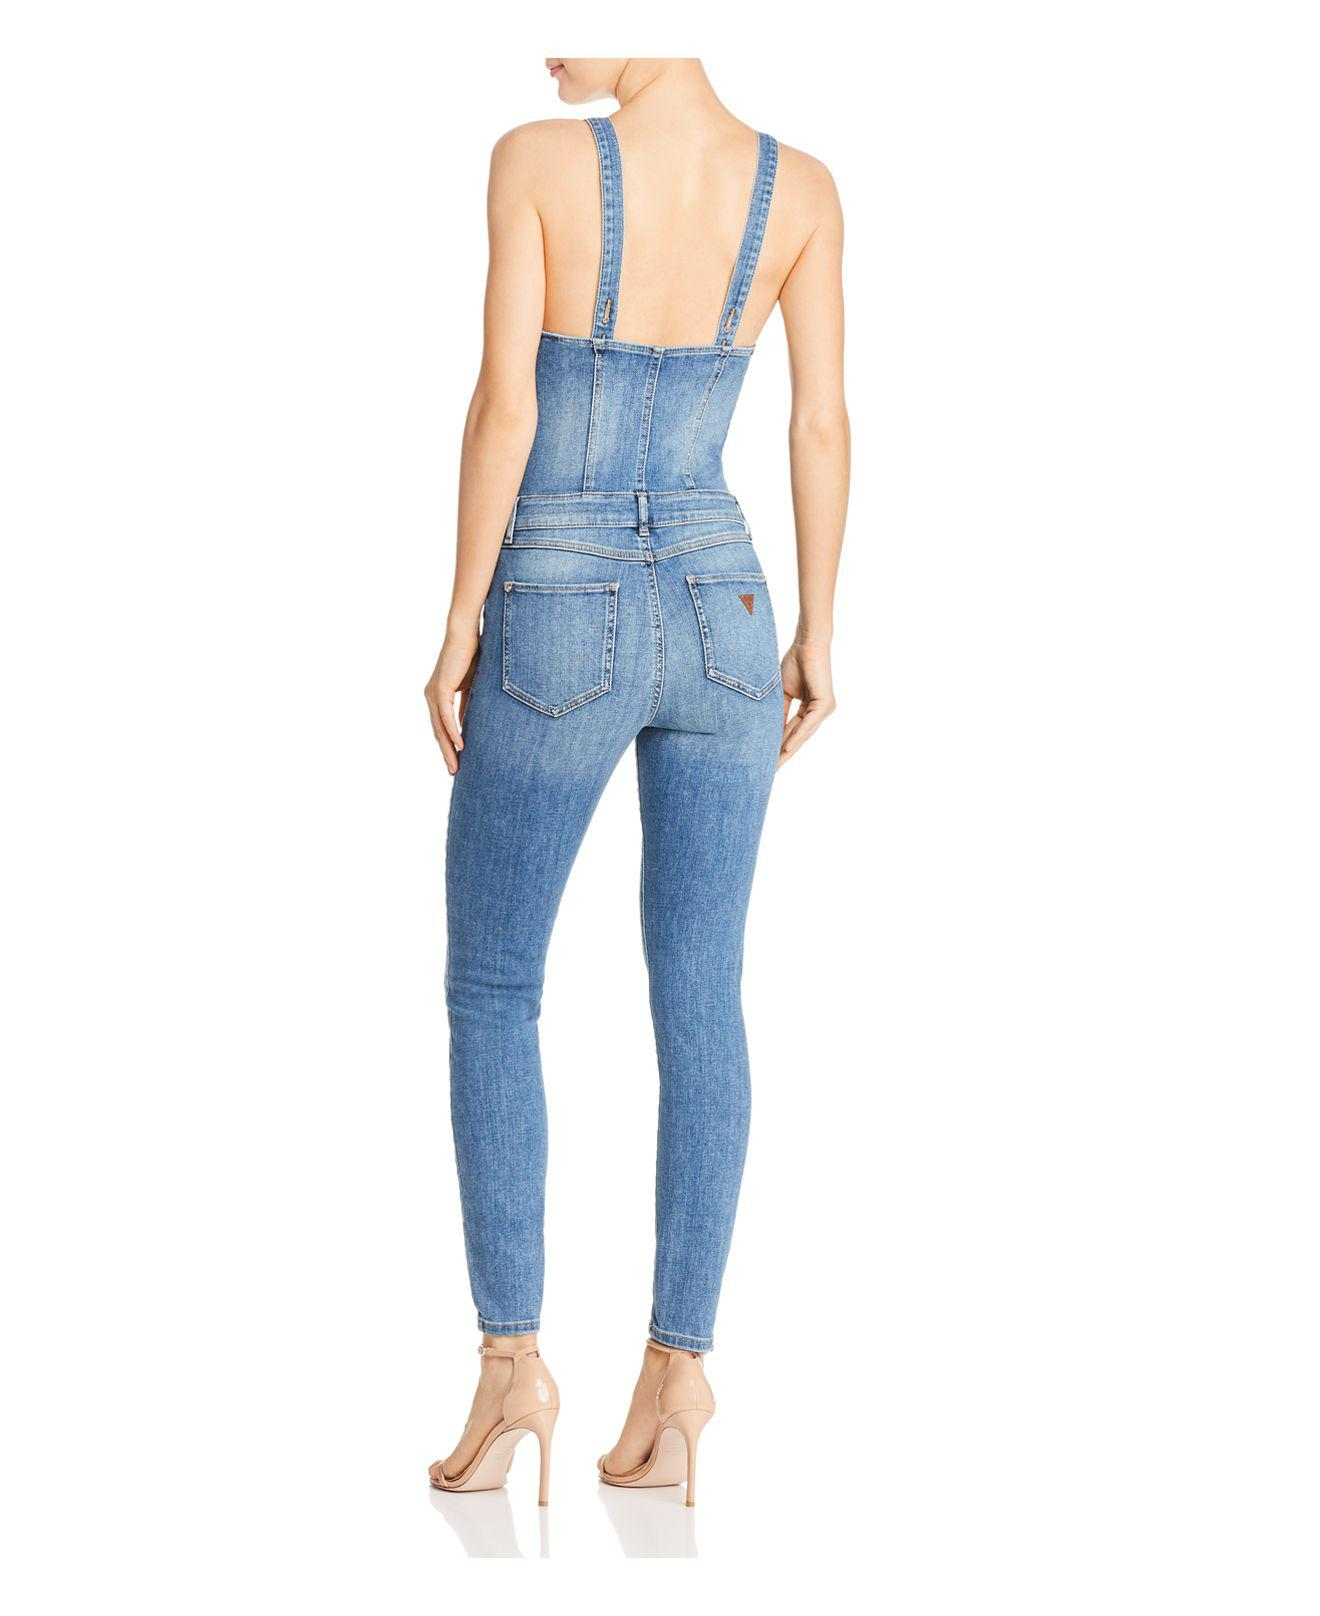 c3fa096cc4d6 Lyst - Guess Button-front Denim Jumpsuit in Blue